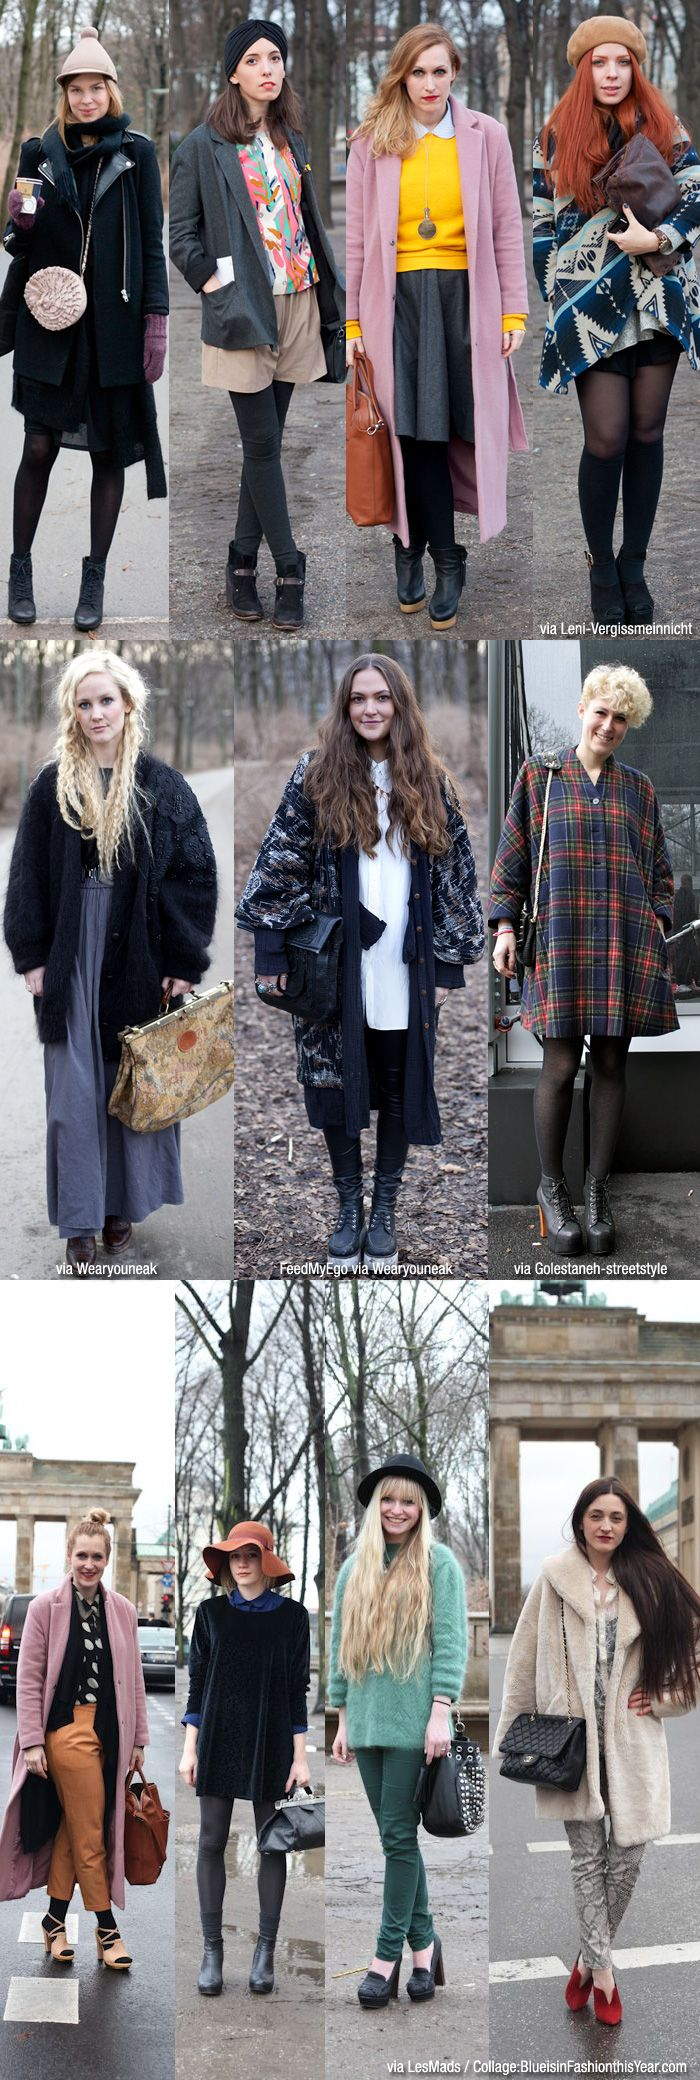 Berlin street style from Blue Is In Fashion This Year